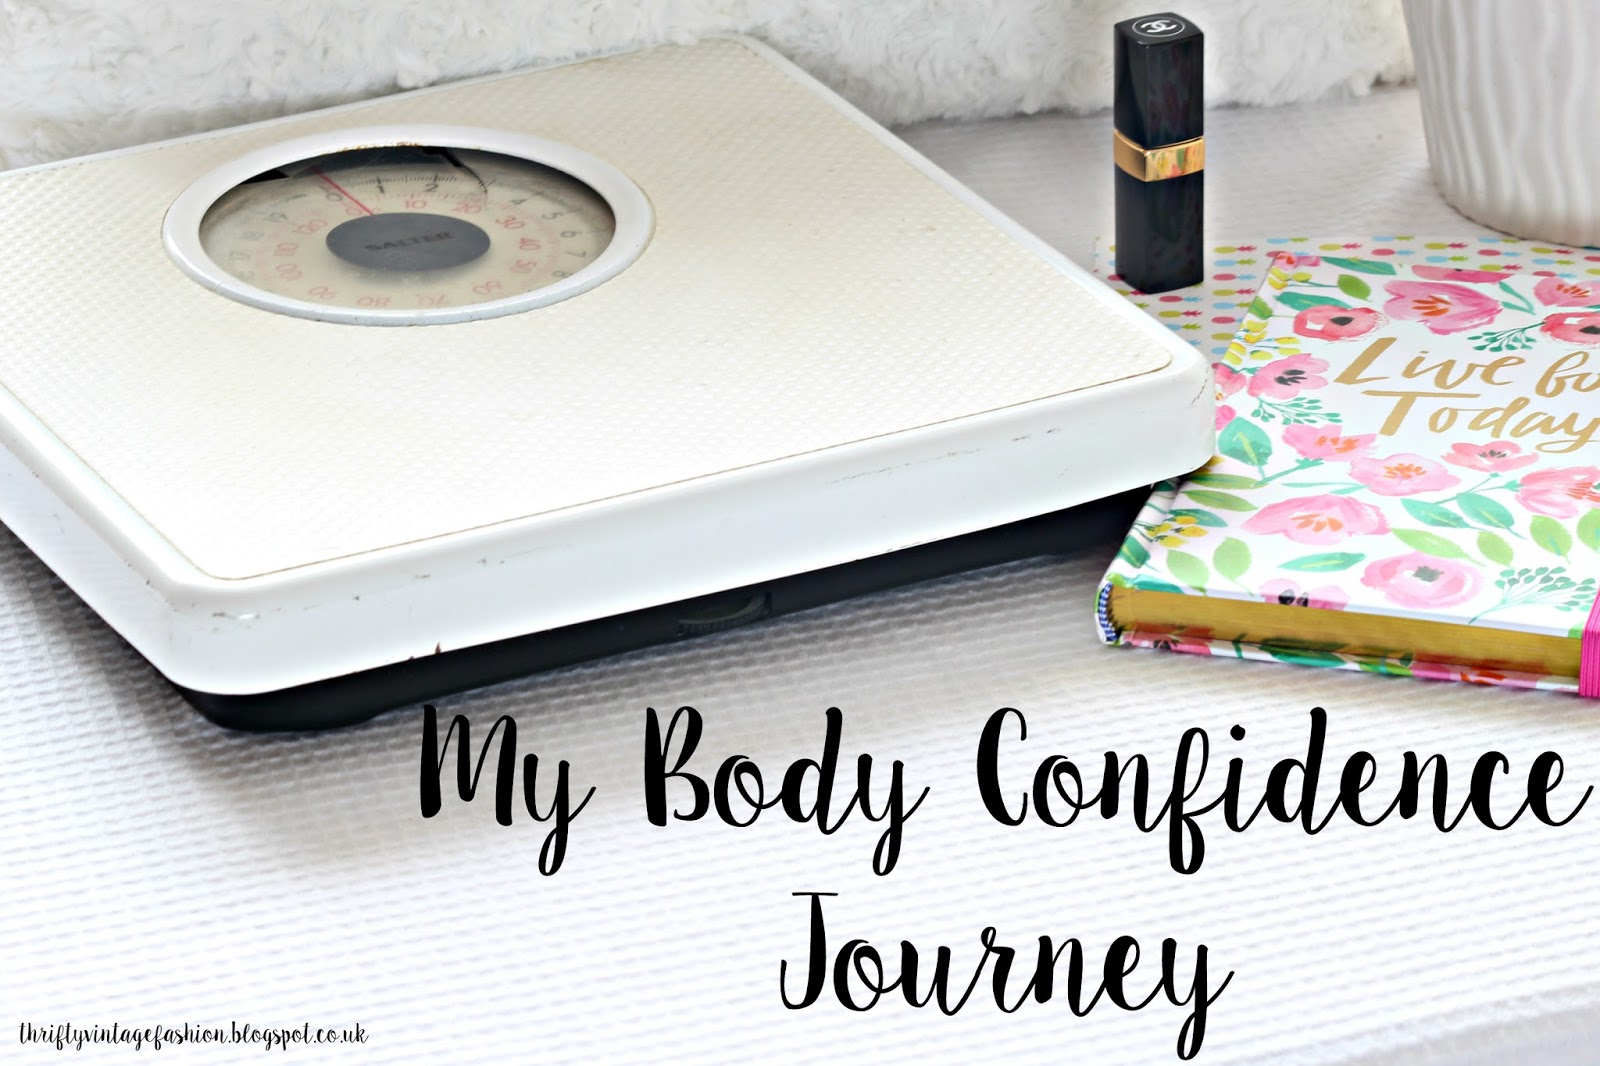 My Body Confidence Journey eating disorders mental health support help